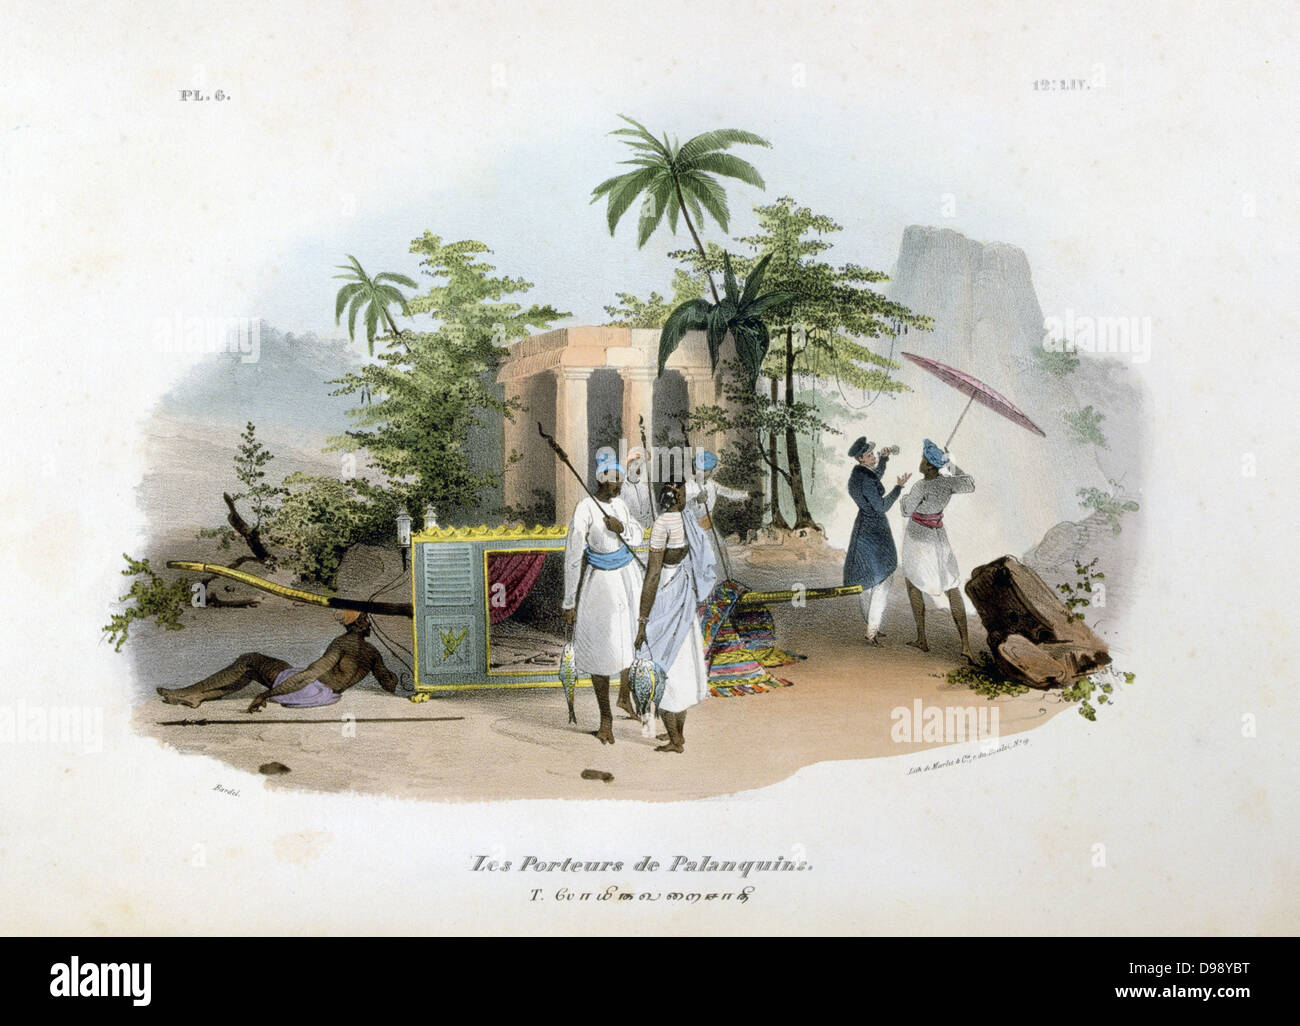 The Palanquin Porters. Hand-coloured lithograph from 'L'Inde francaise', Paris, 1828. Porters resting - Stock Image